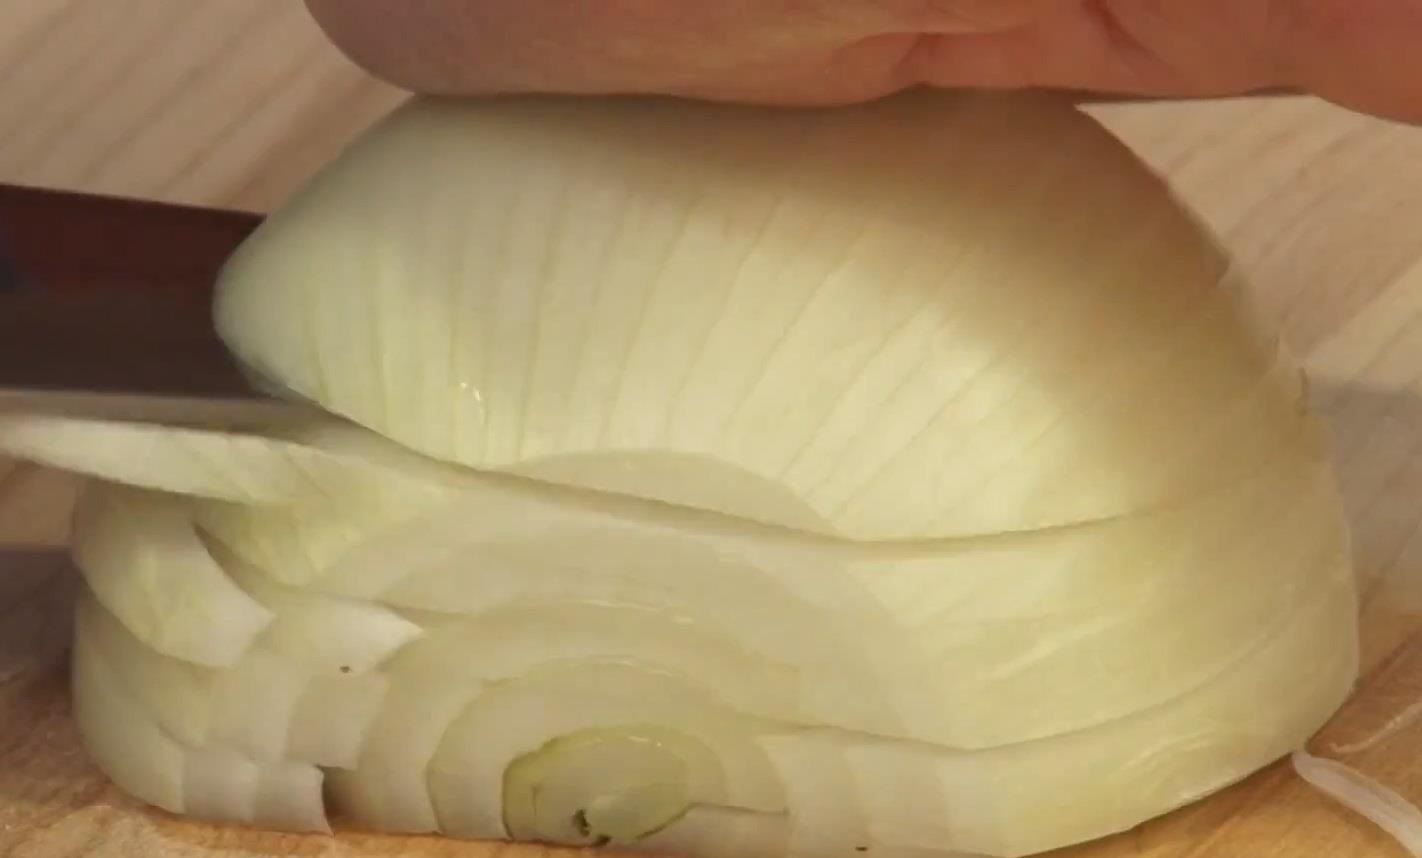 Knife Skills 101: How to Chop, Dice, & Mince Onions Like a Pro